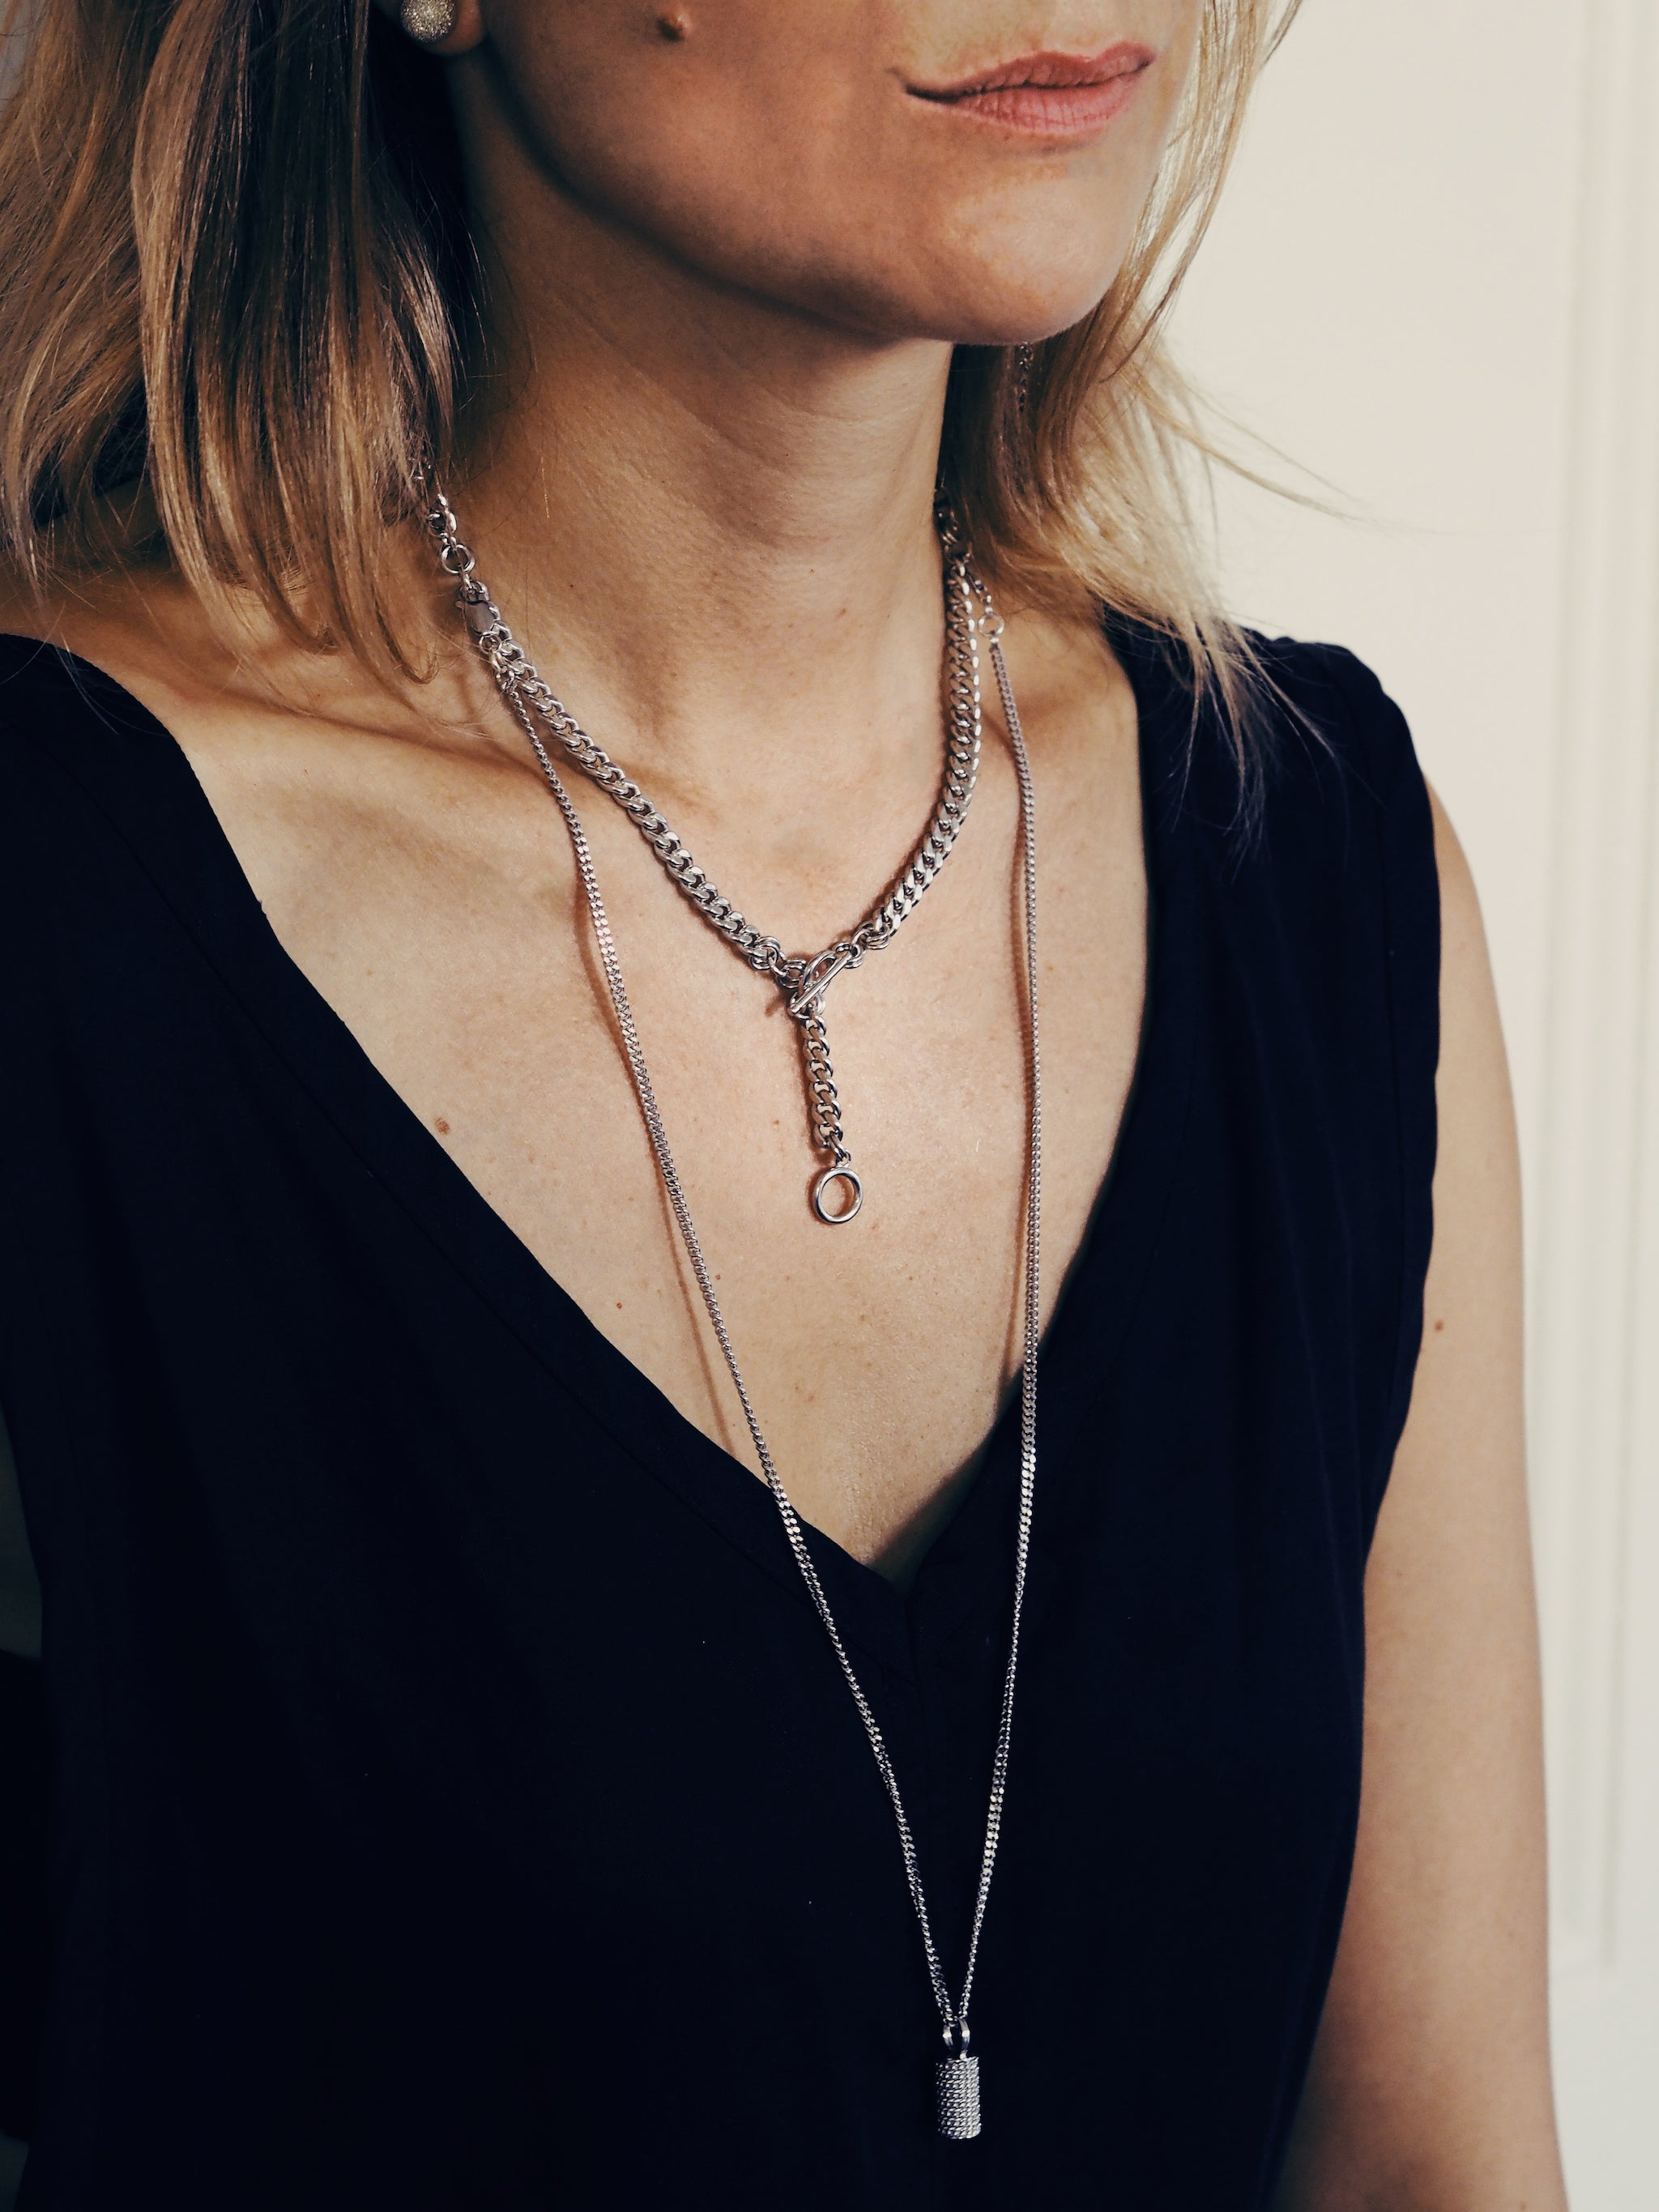 CLYDE necklace - Rhodium